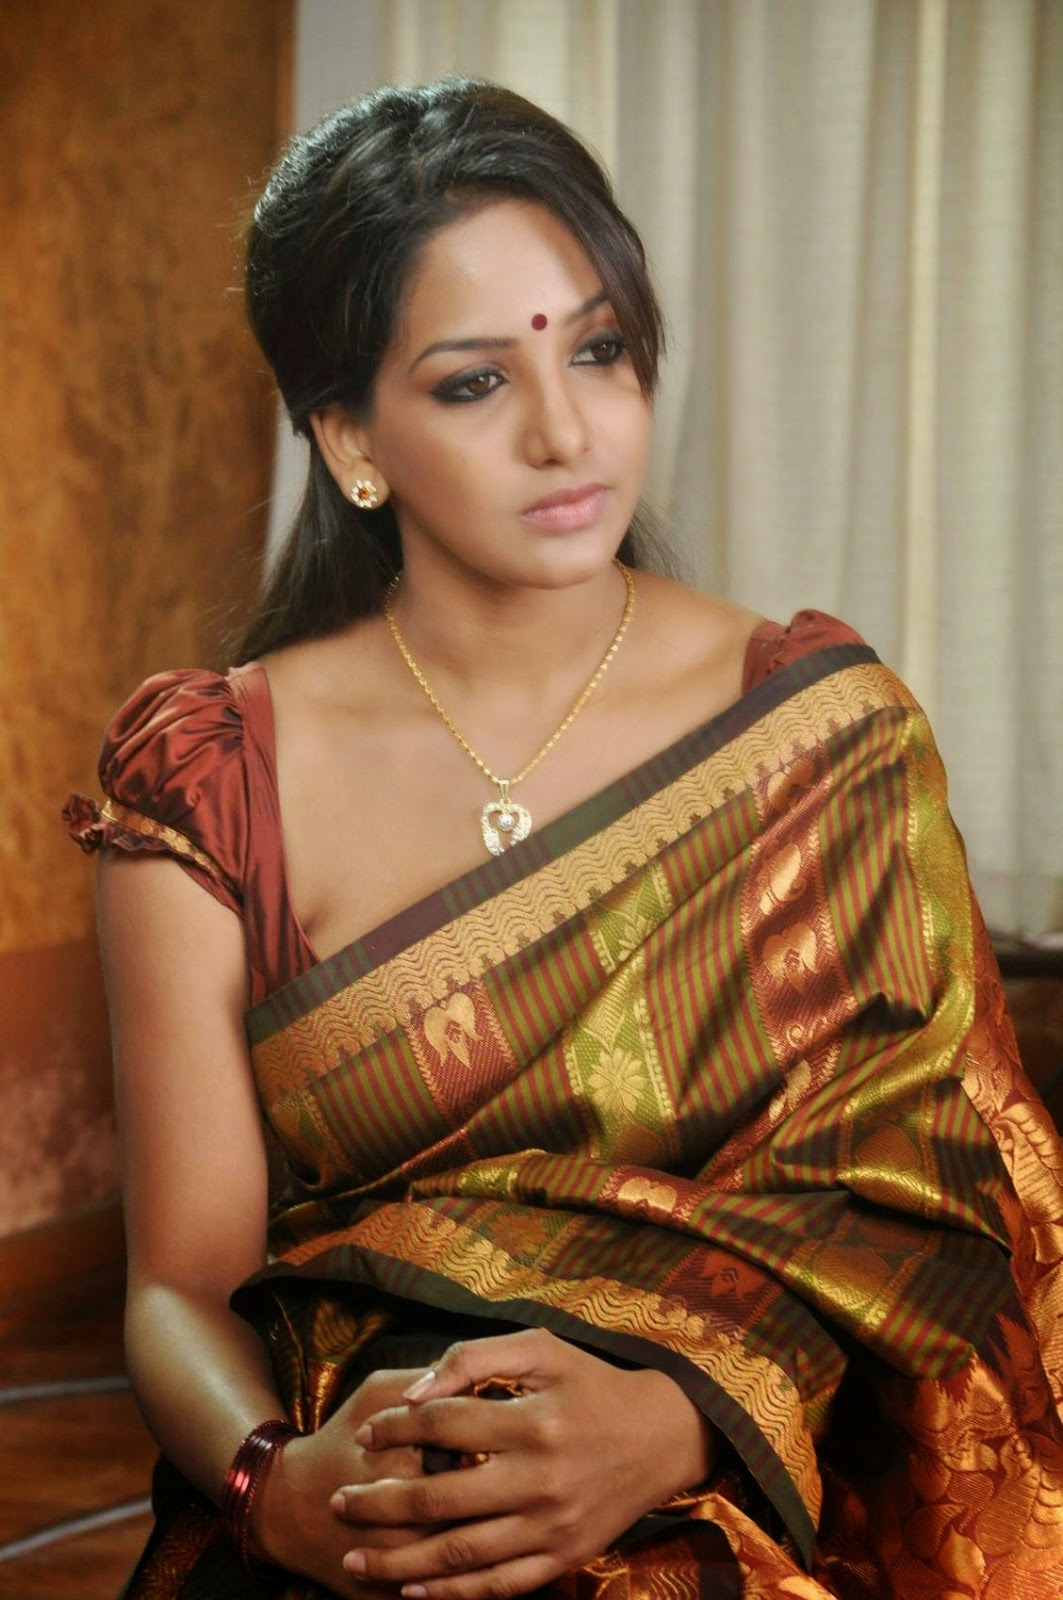 Best Bha Images On Pinterest Tamil Movies Indian Actresses And Bollywood Actress